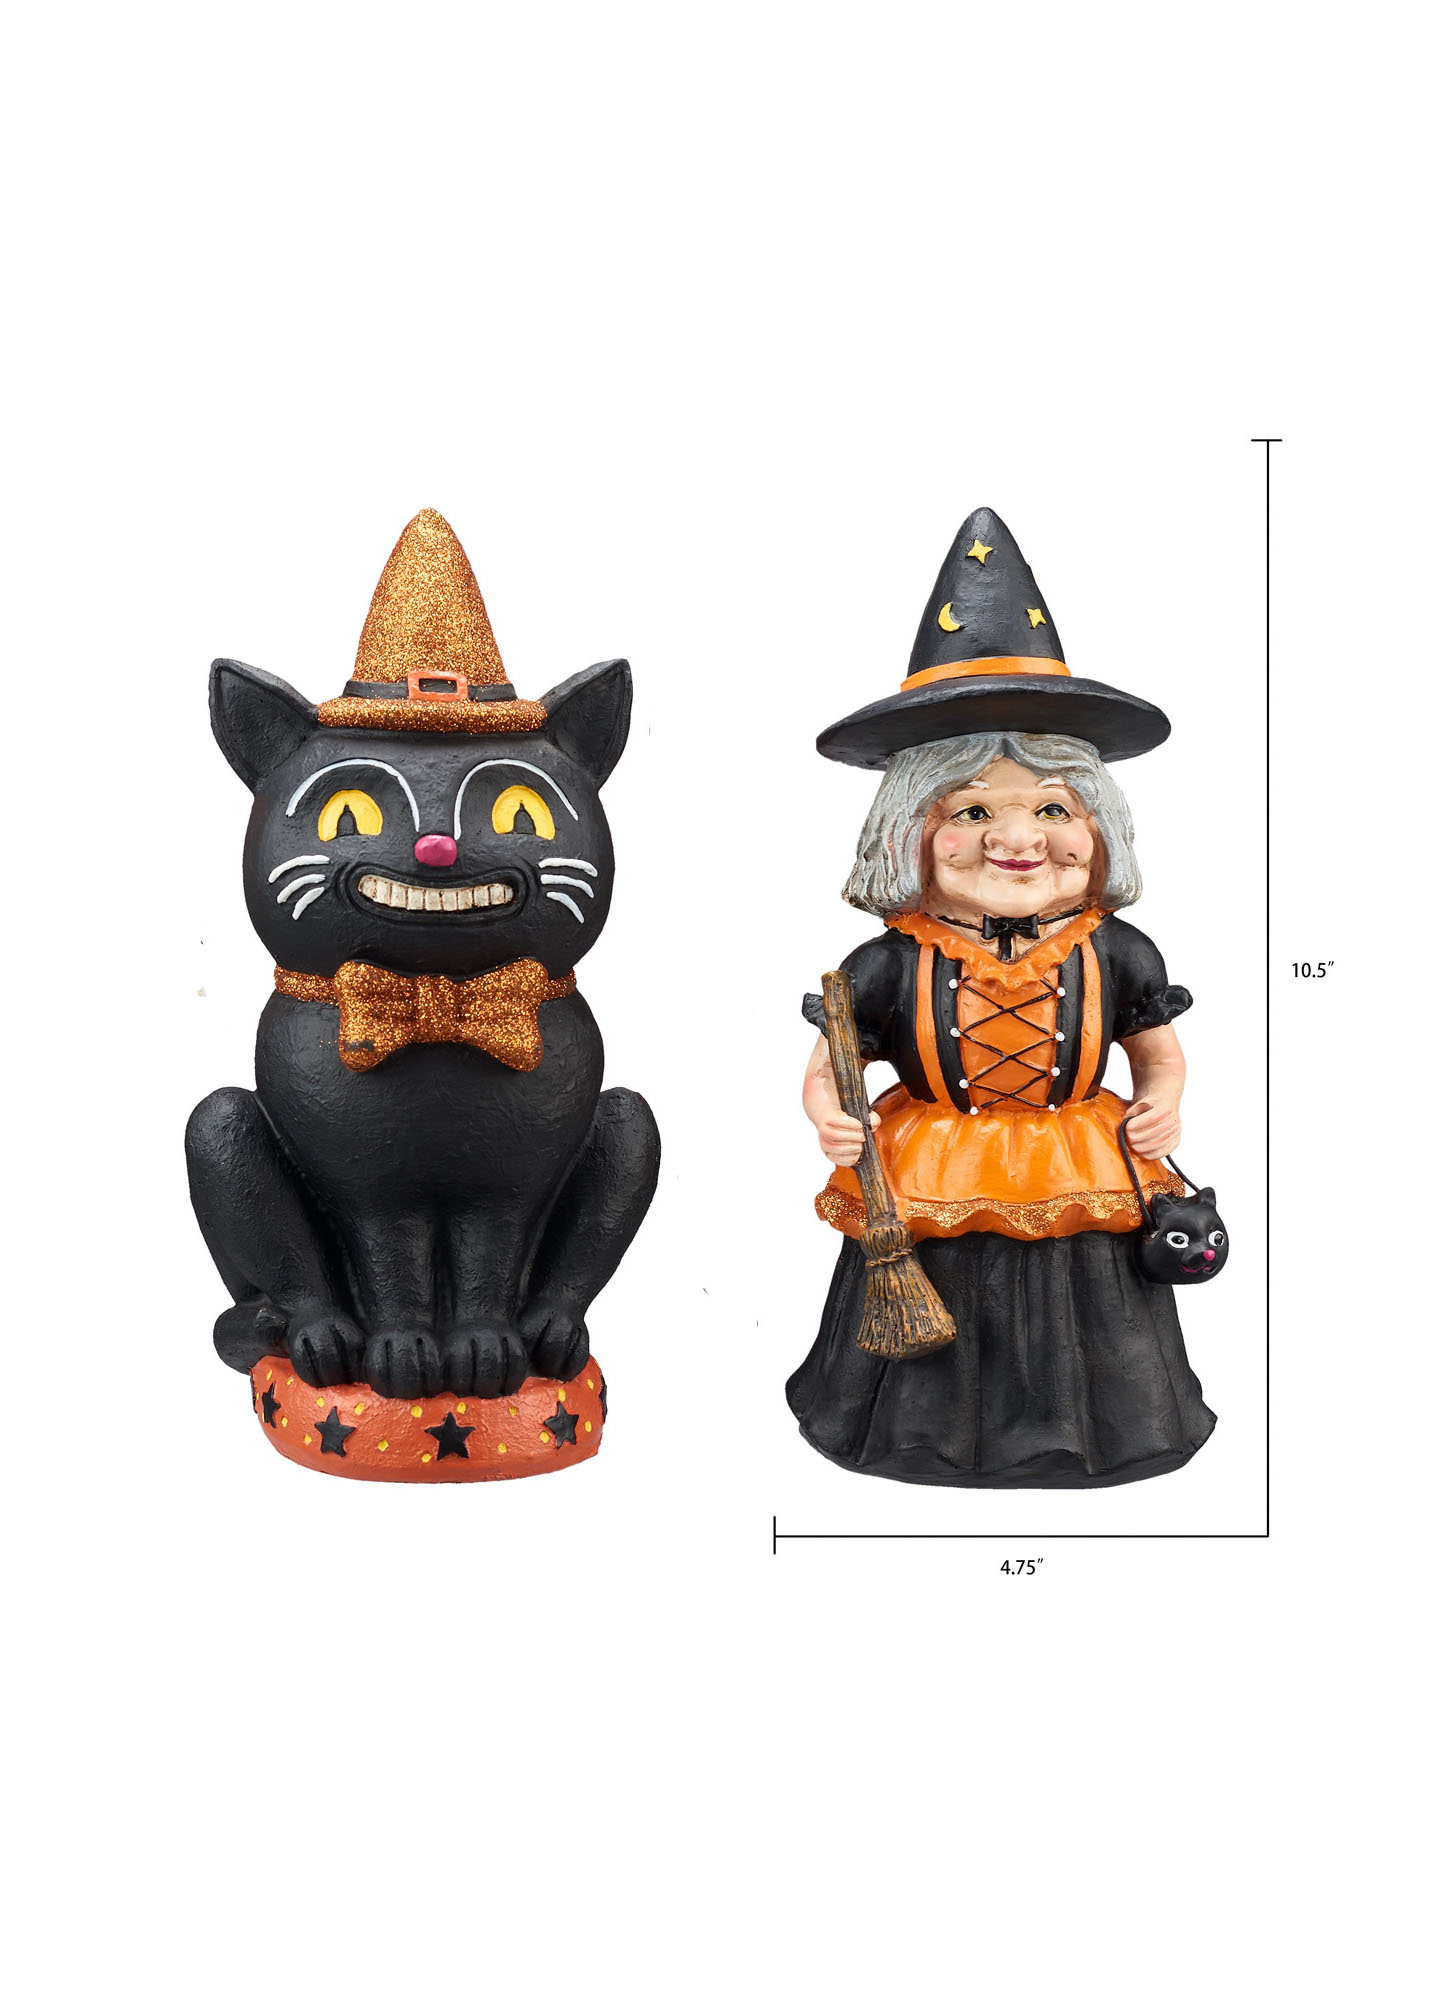 Way to Celebrate Vintage Figurine Halloween Table Top Decoration, Black Cat and Witch